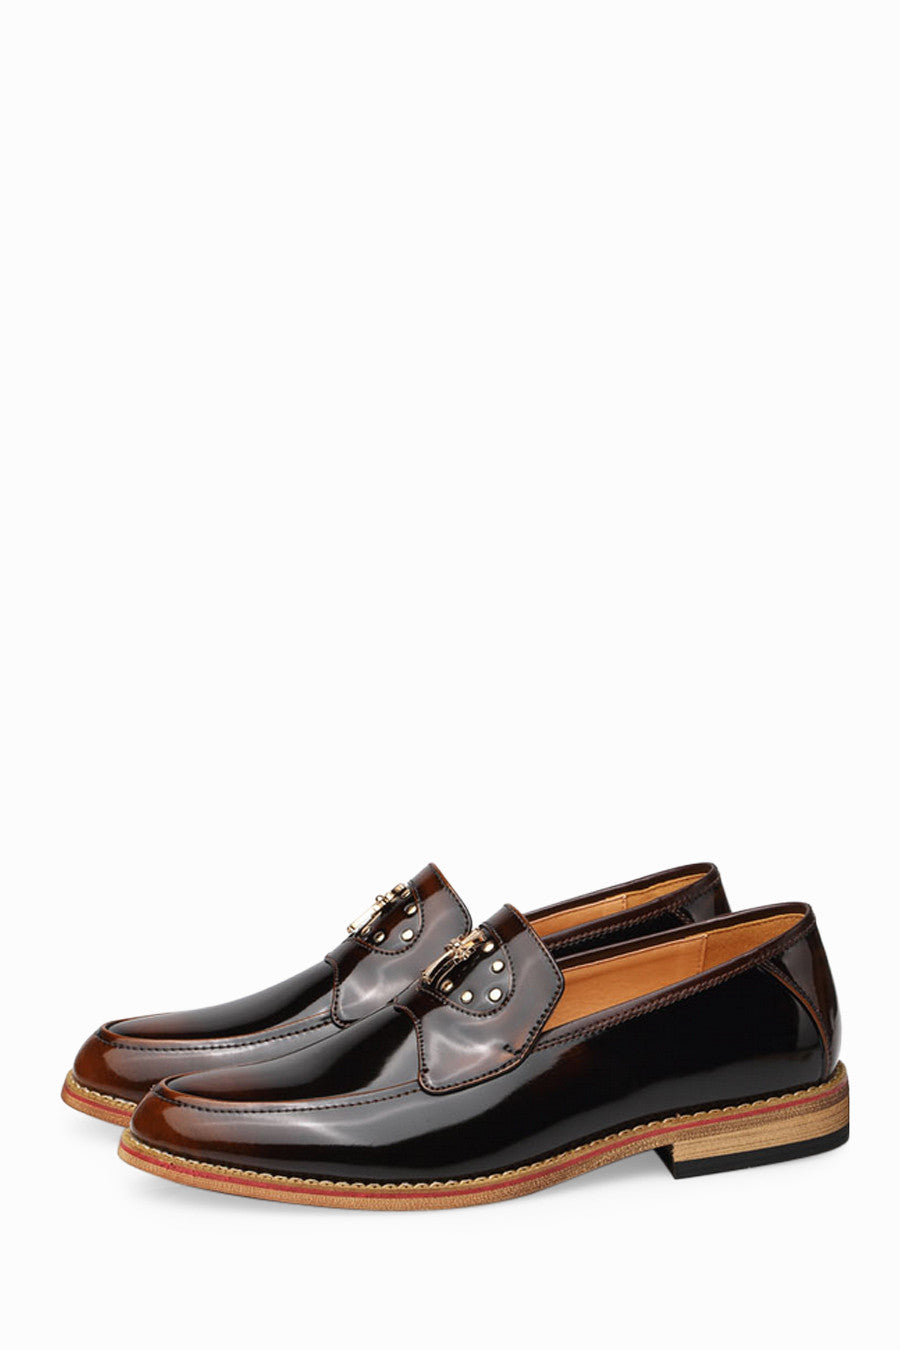 Patent Cross Brown Shoes